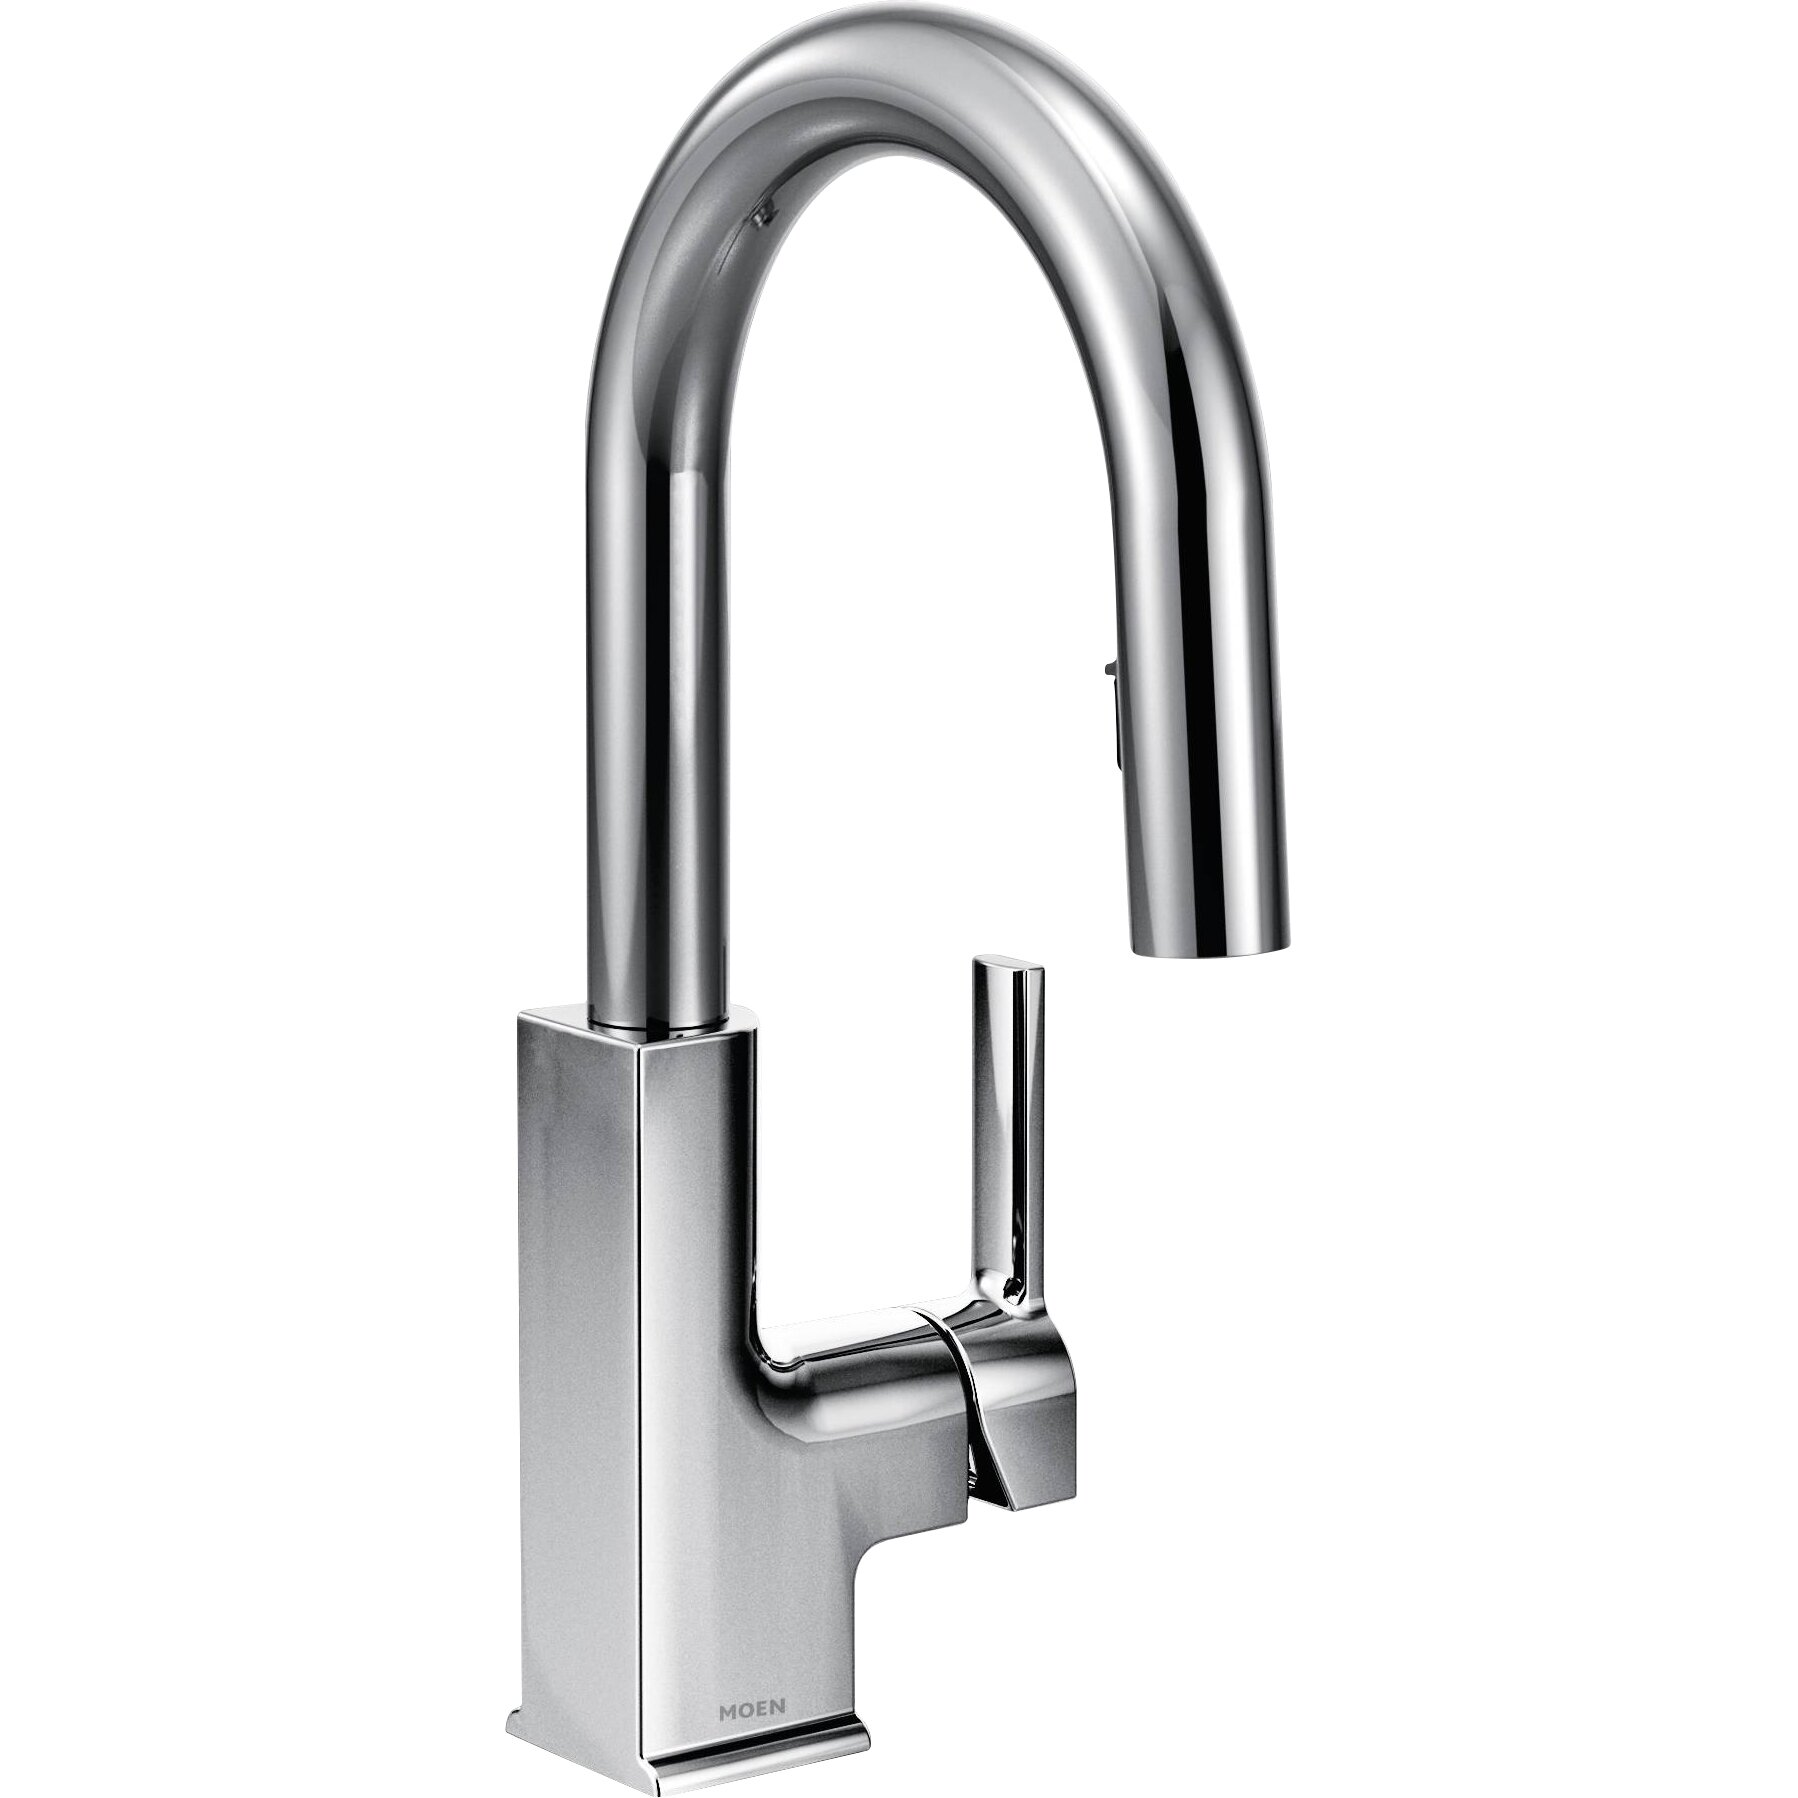 Moen STo Single Handle Deck mounted Kitchen Faucet